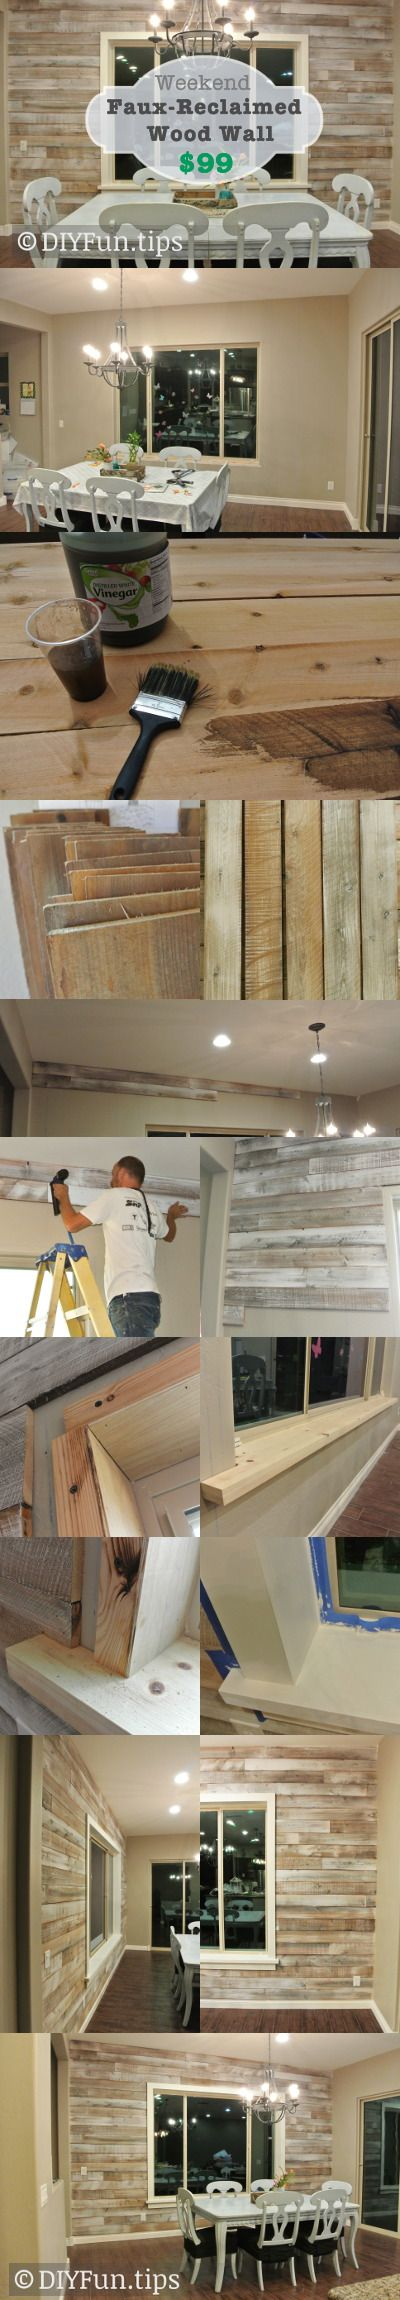 "DIY Faux-Reclaimed Wood Wall. Put up a ""reclaimed wood"" wall for less than $99 bucks."